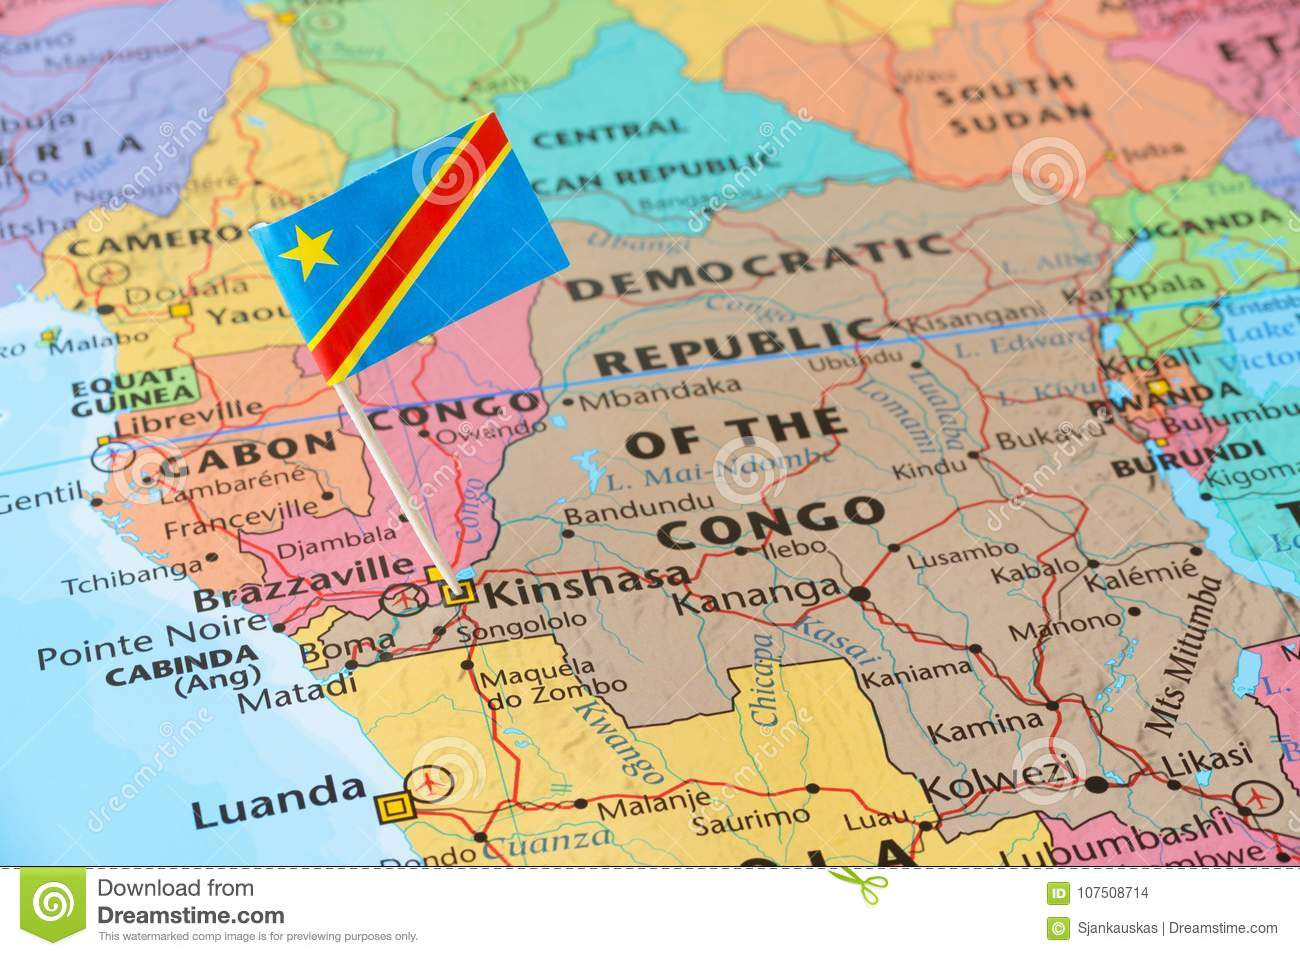 Congo Kinshasa Map Africa.The Democratic Republic Of The Congo Flag Pin On Map Stock